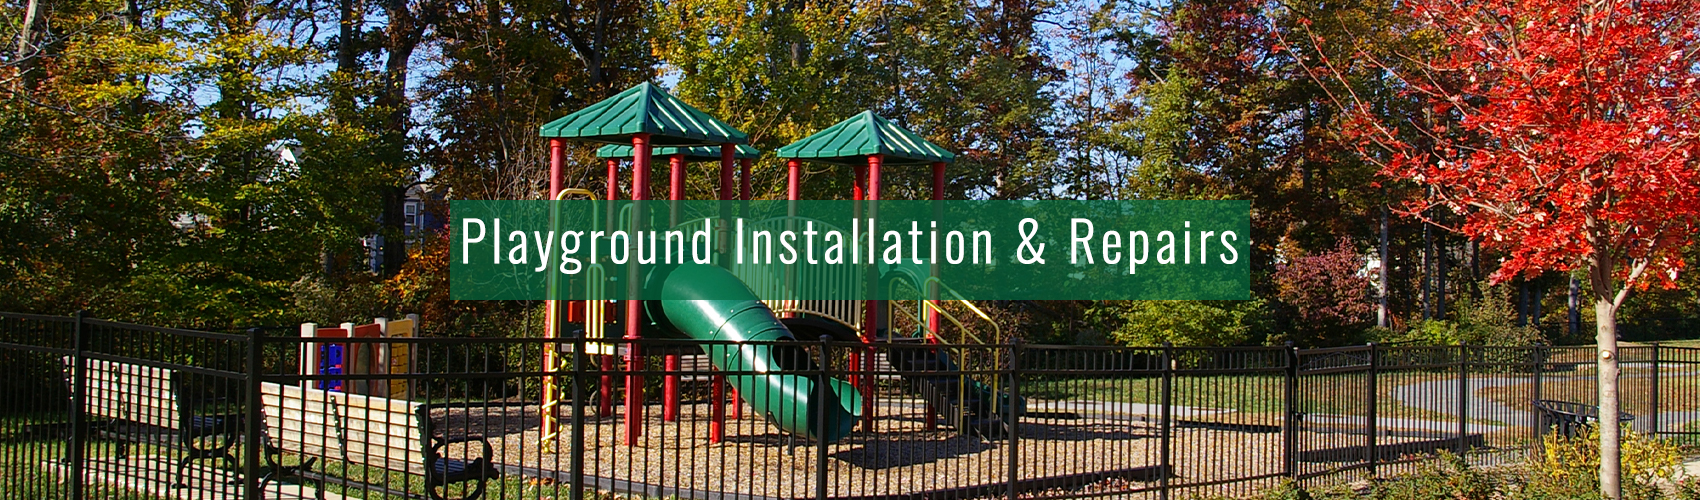 Playground Installation and Repair for your Commercial Property from Complete Landscaping